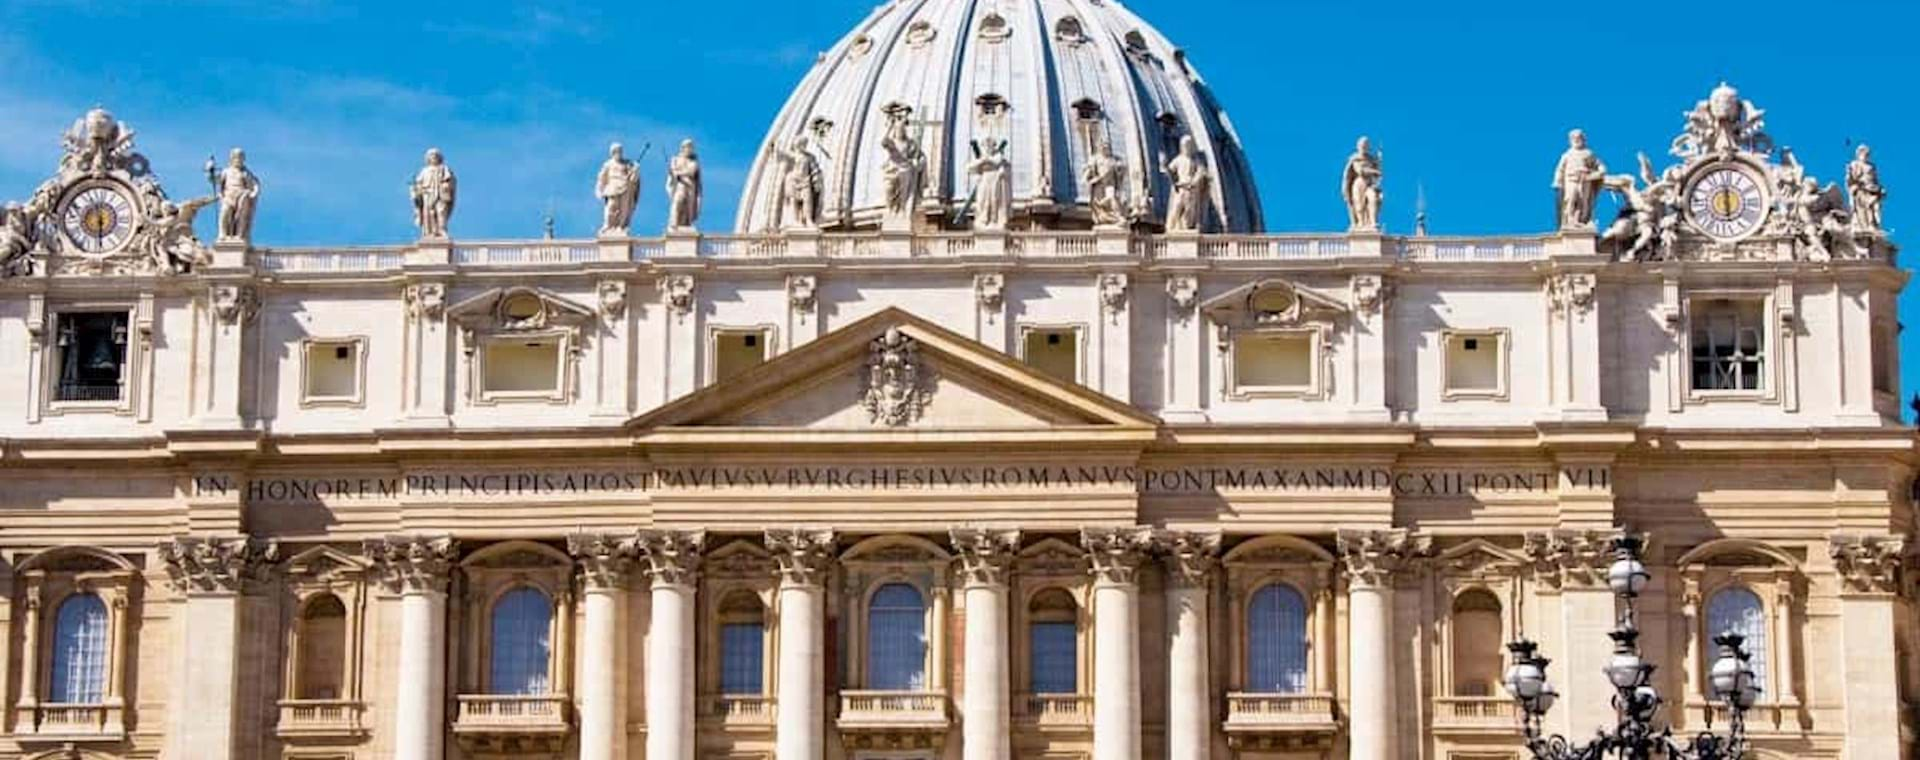 front view of the St Peter Basilica